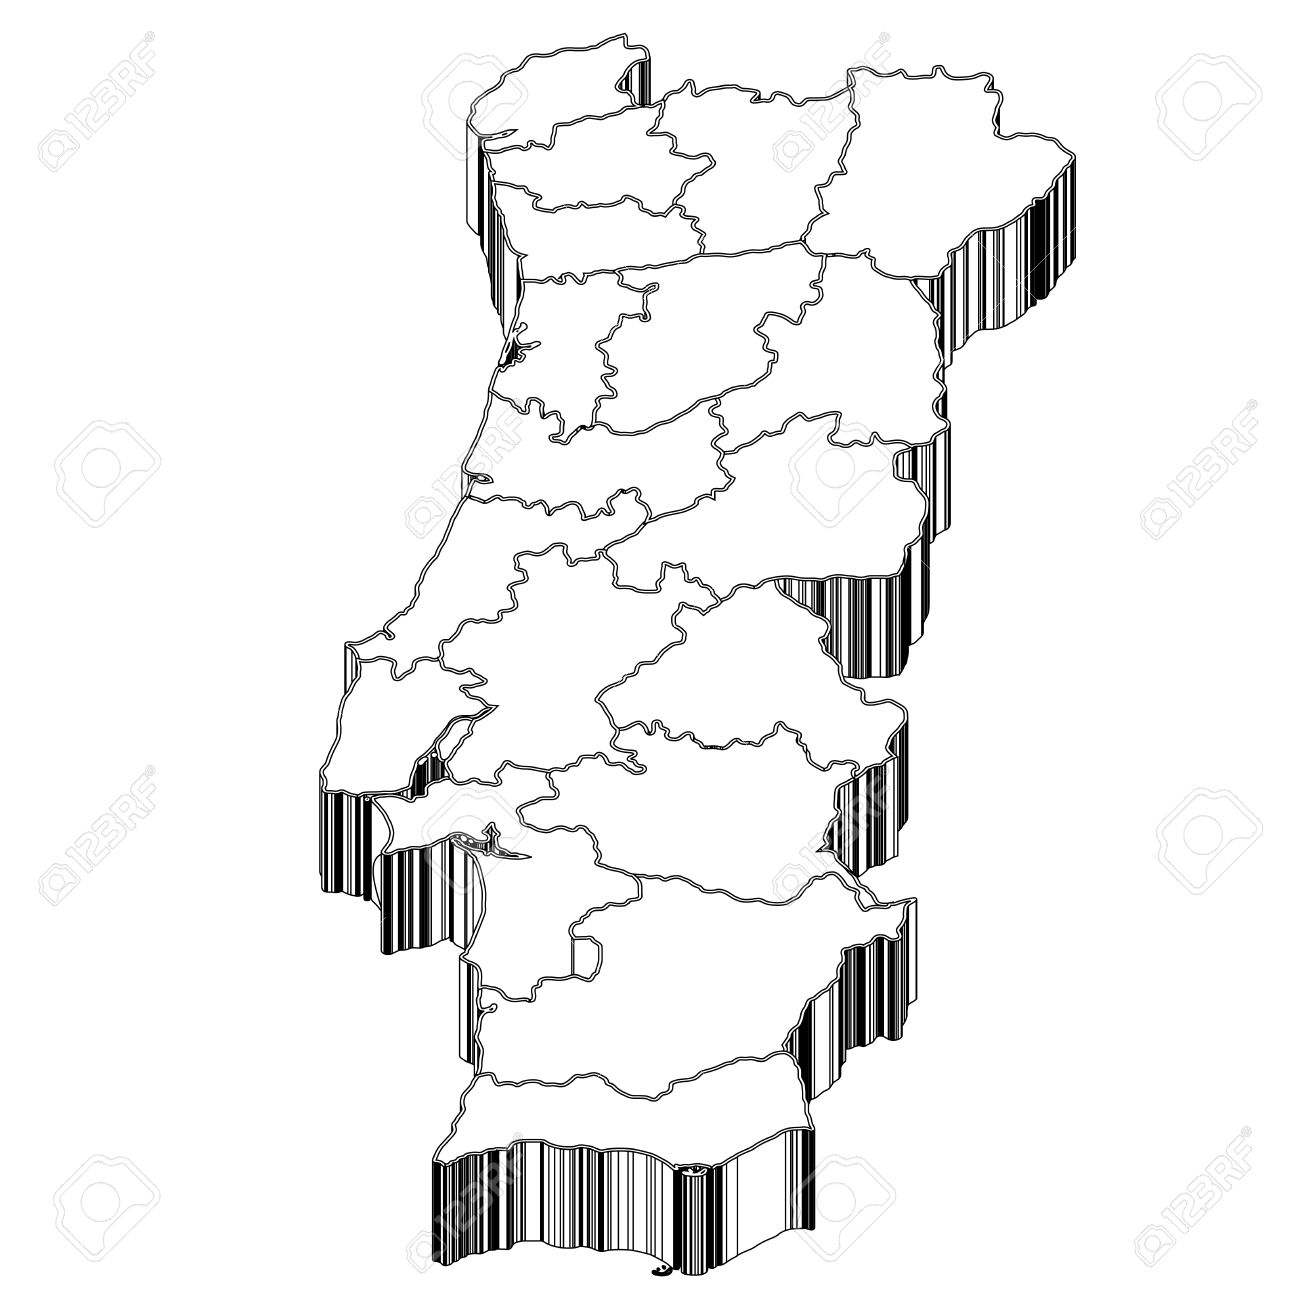 Portugal Portugal Map Royalty Free Cliparts, Vectors, And Stock.